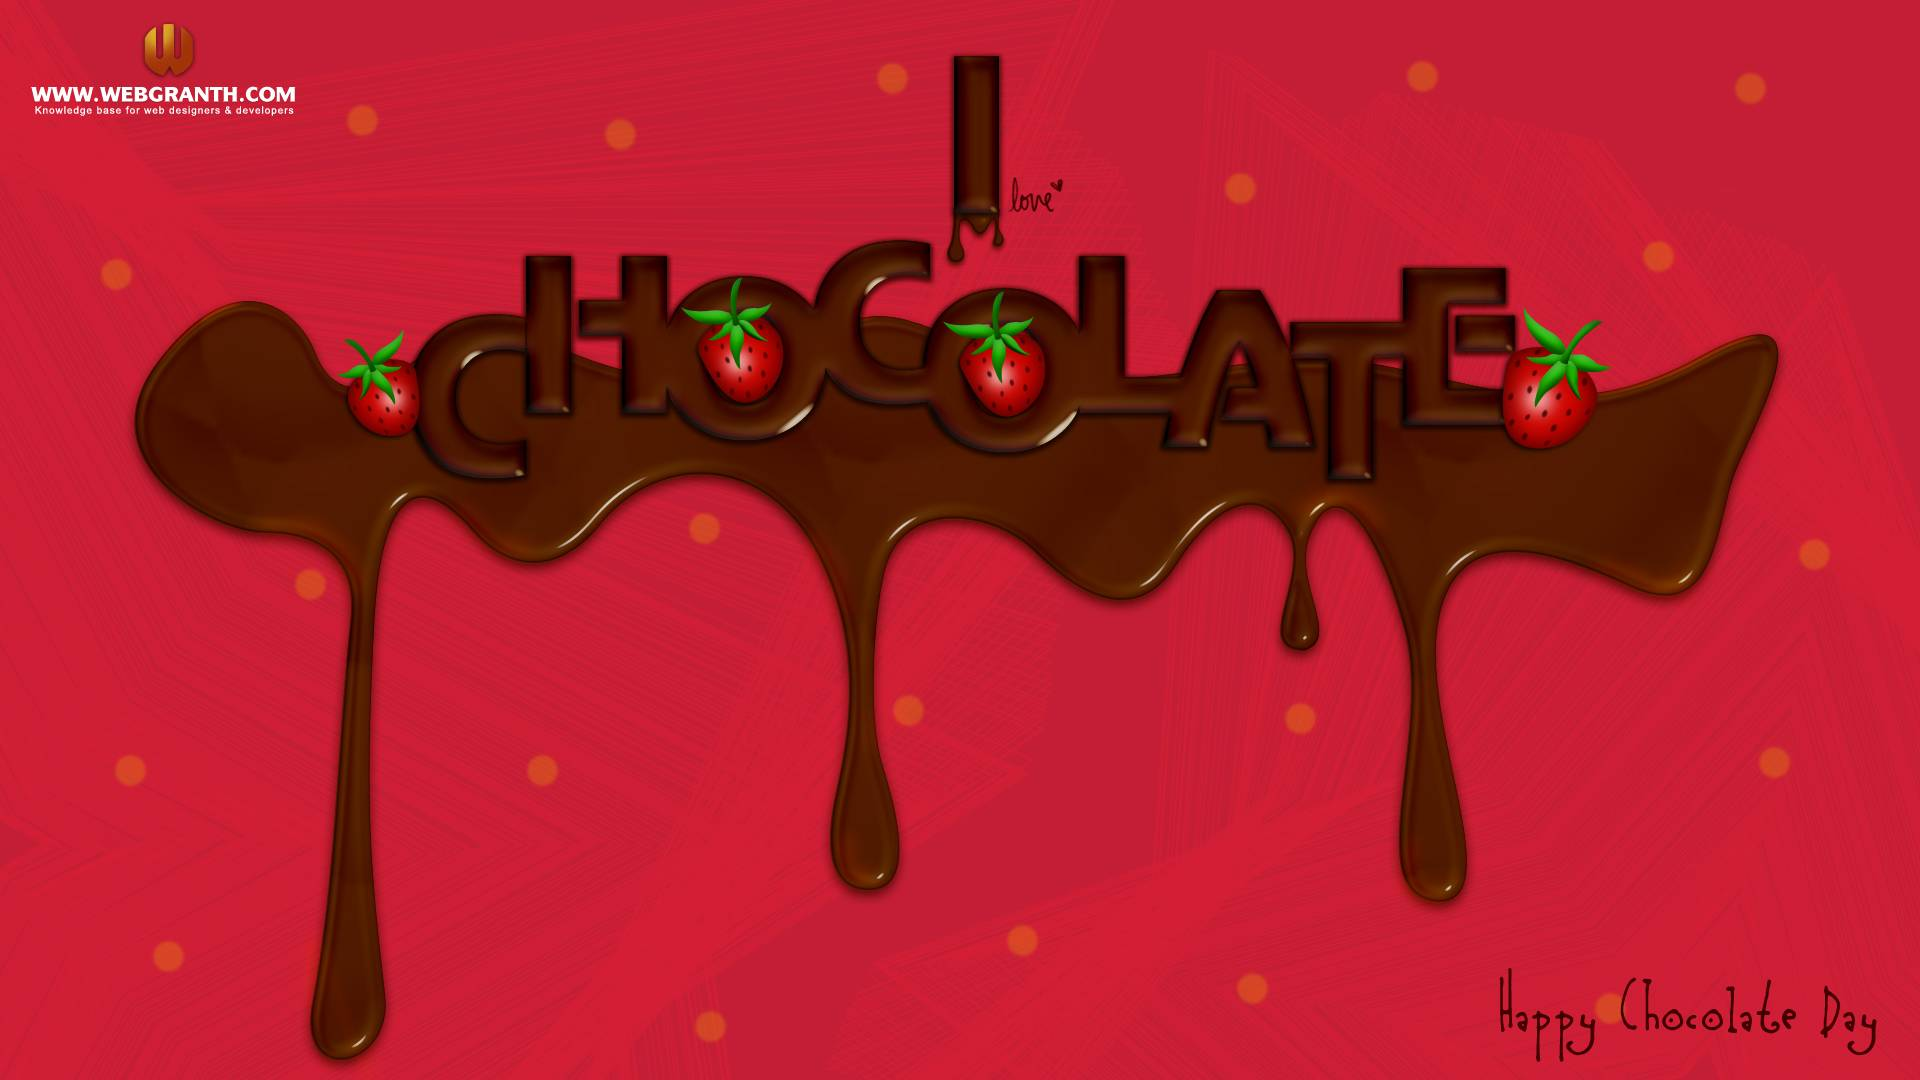 I Love Wallpaper code : I Love chocolate Wallpaper - WallpaperSafari